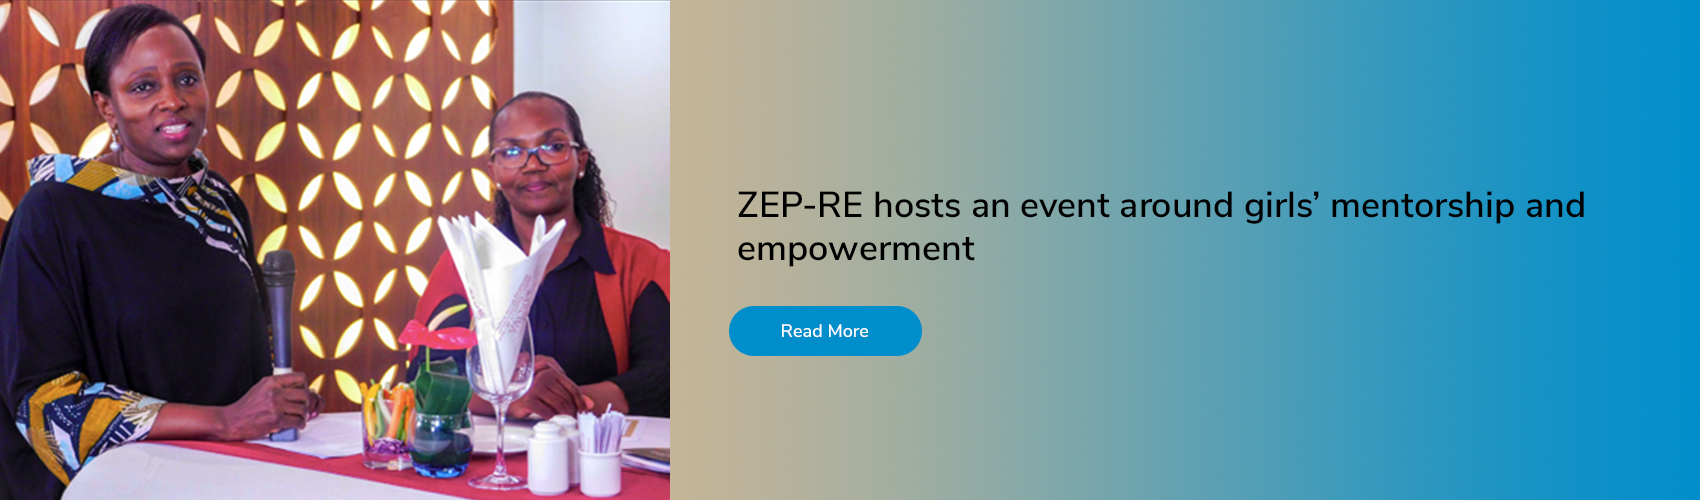 ZEP-RE hosts an event around girls' mentorship and empowerment